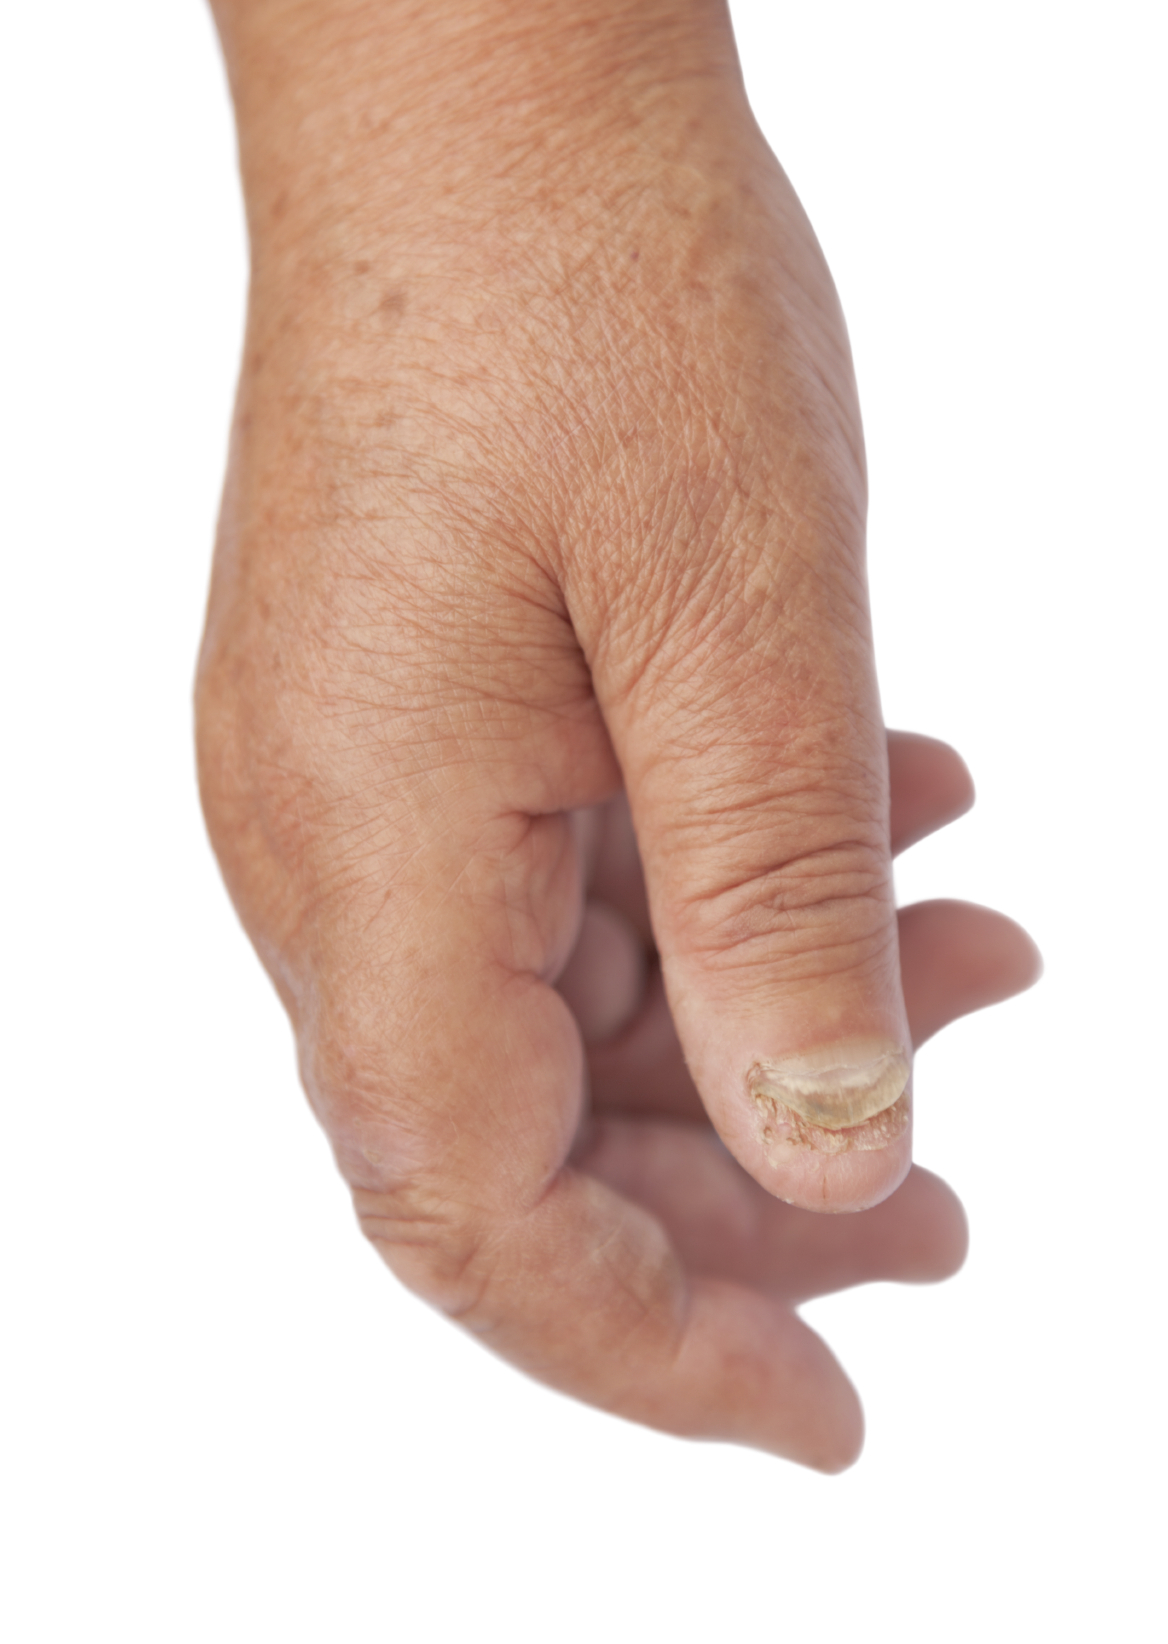 How Do You Know If You Have A Nail Fungal Infection?